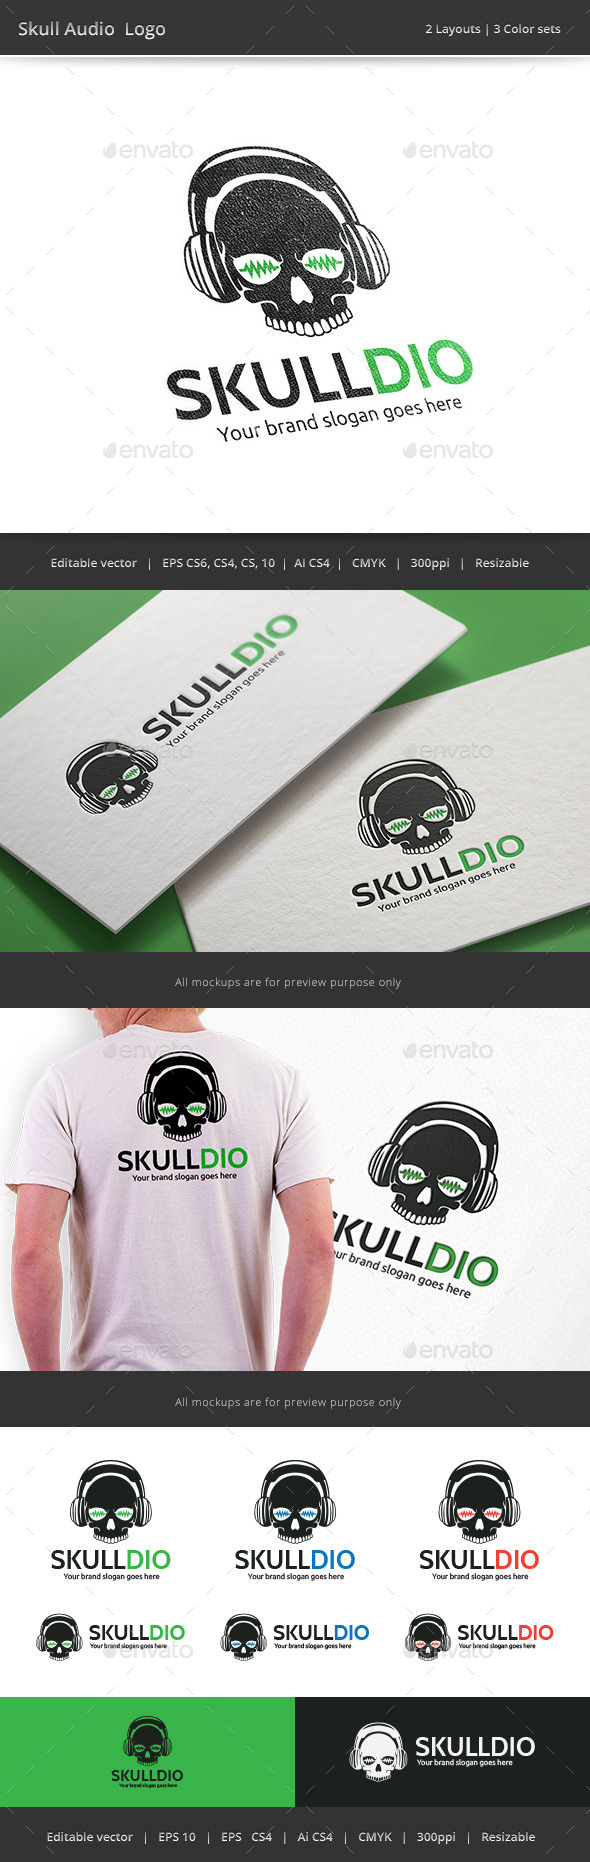 GraphicRiver Skull Audio Logo 9144570